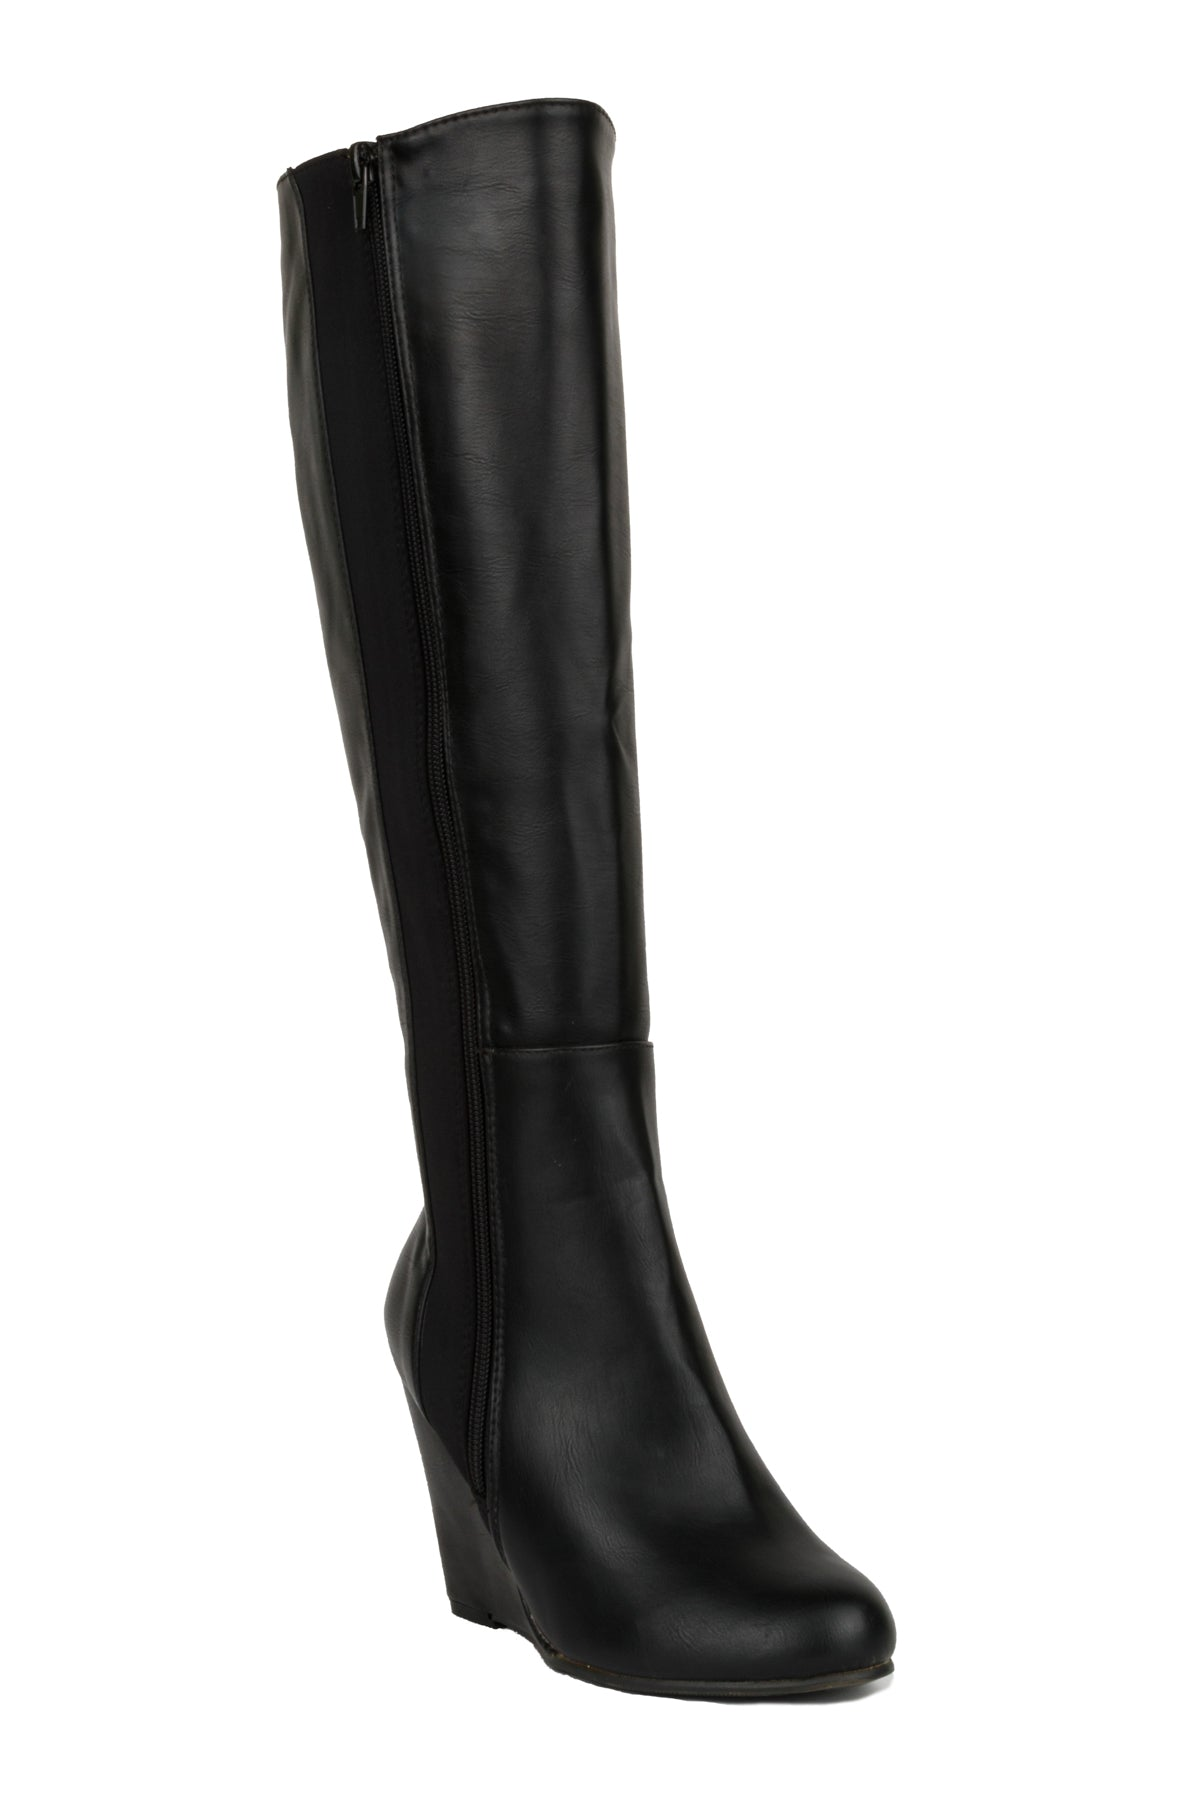 Faux Leather Platform High Wedge Side Zipper Boots